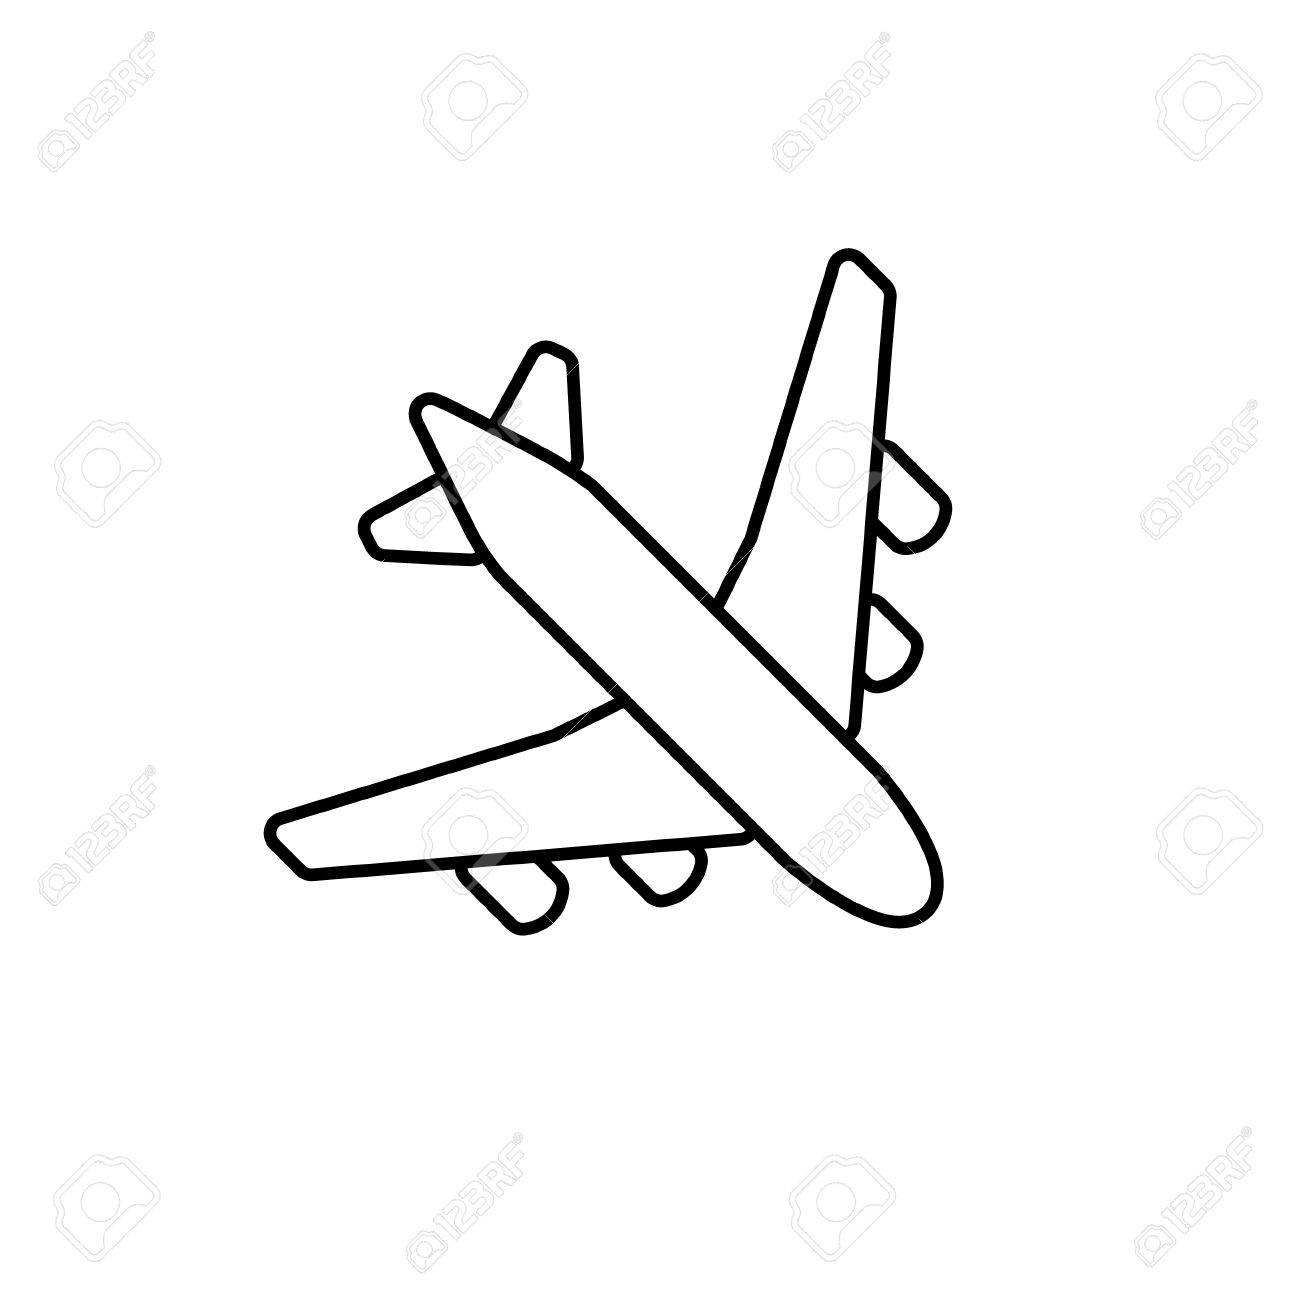 Simple Plane Clipart.